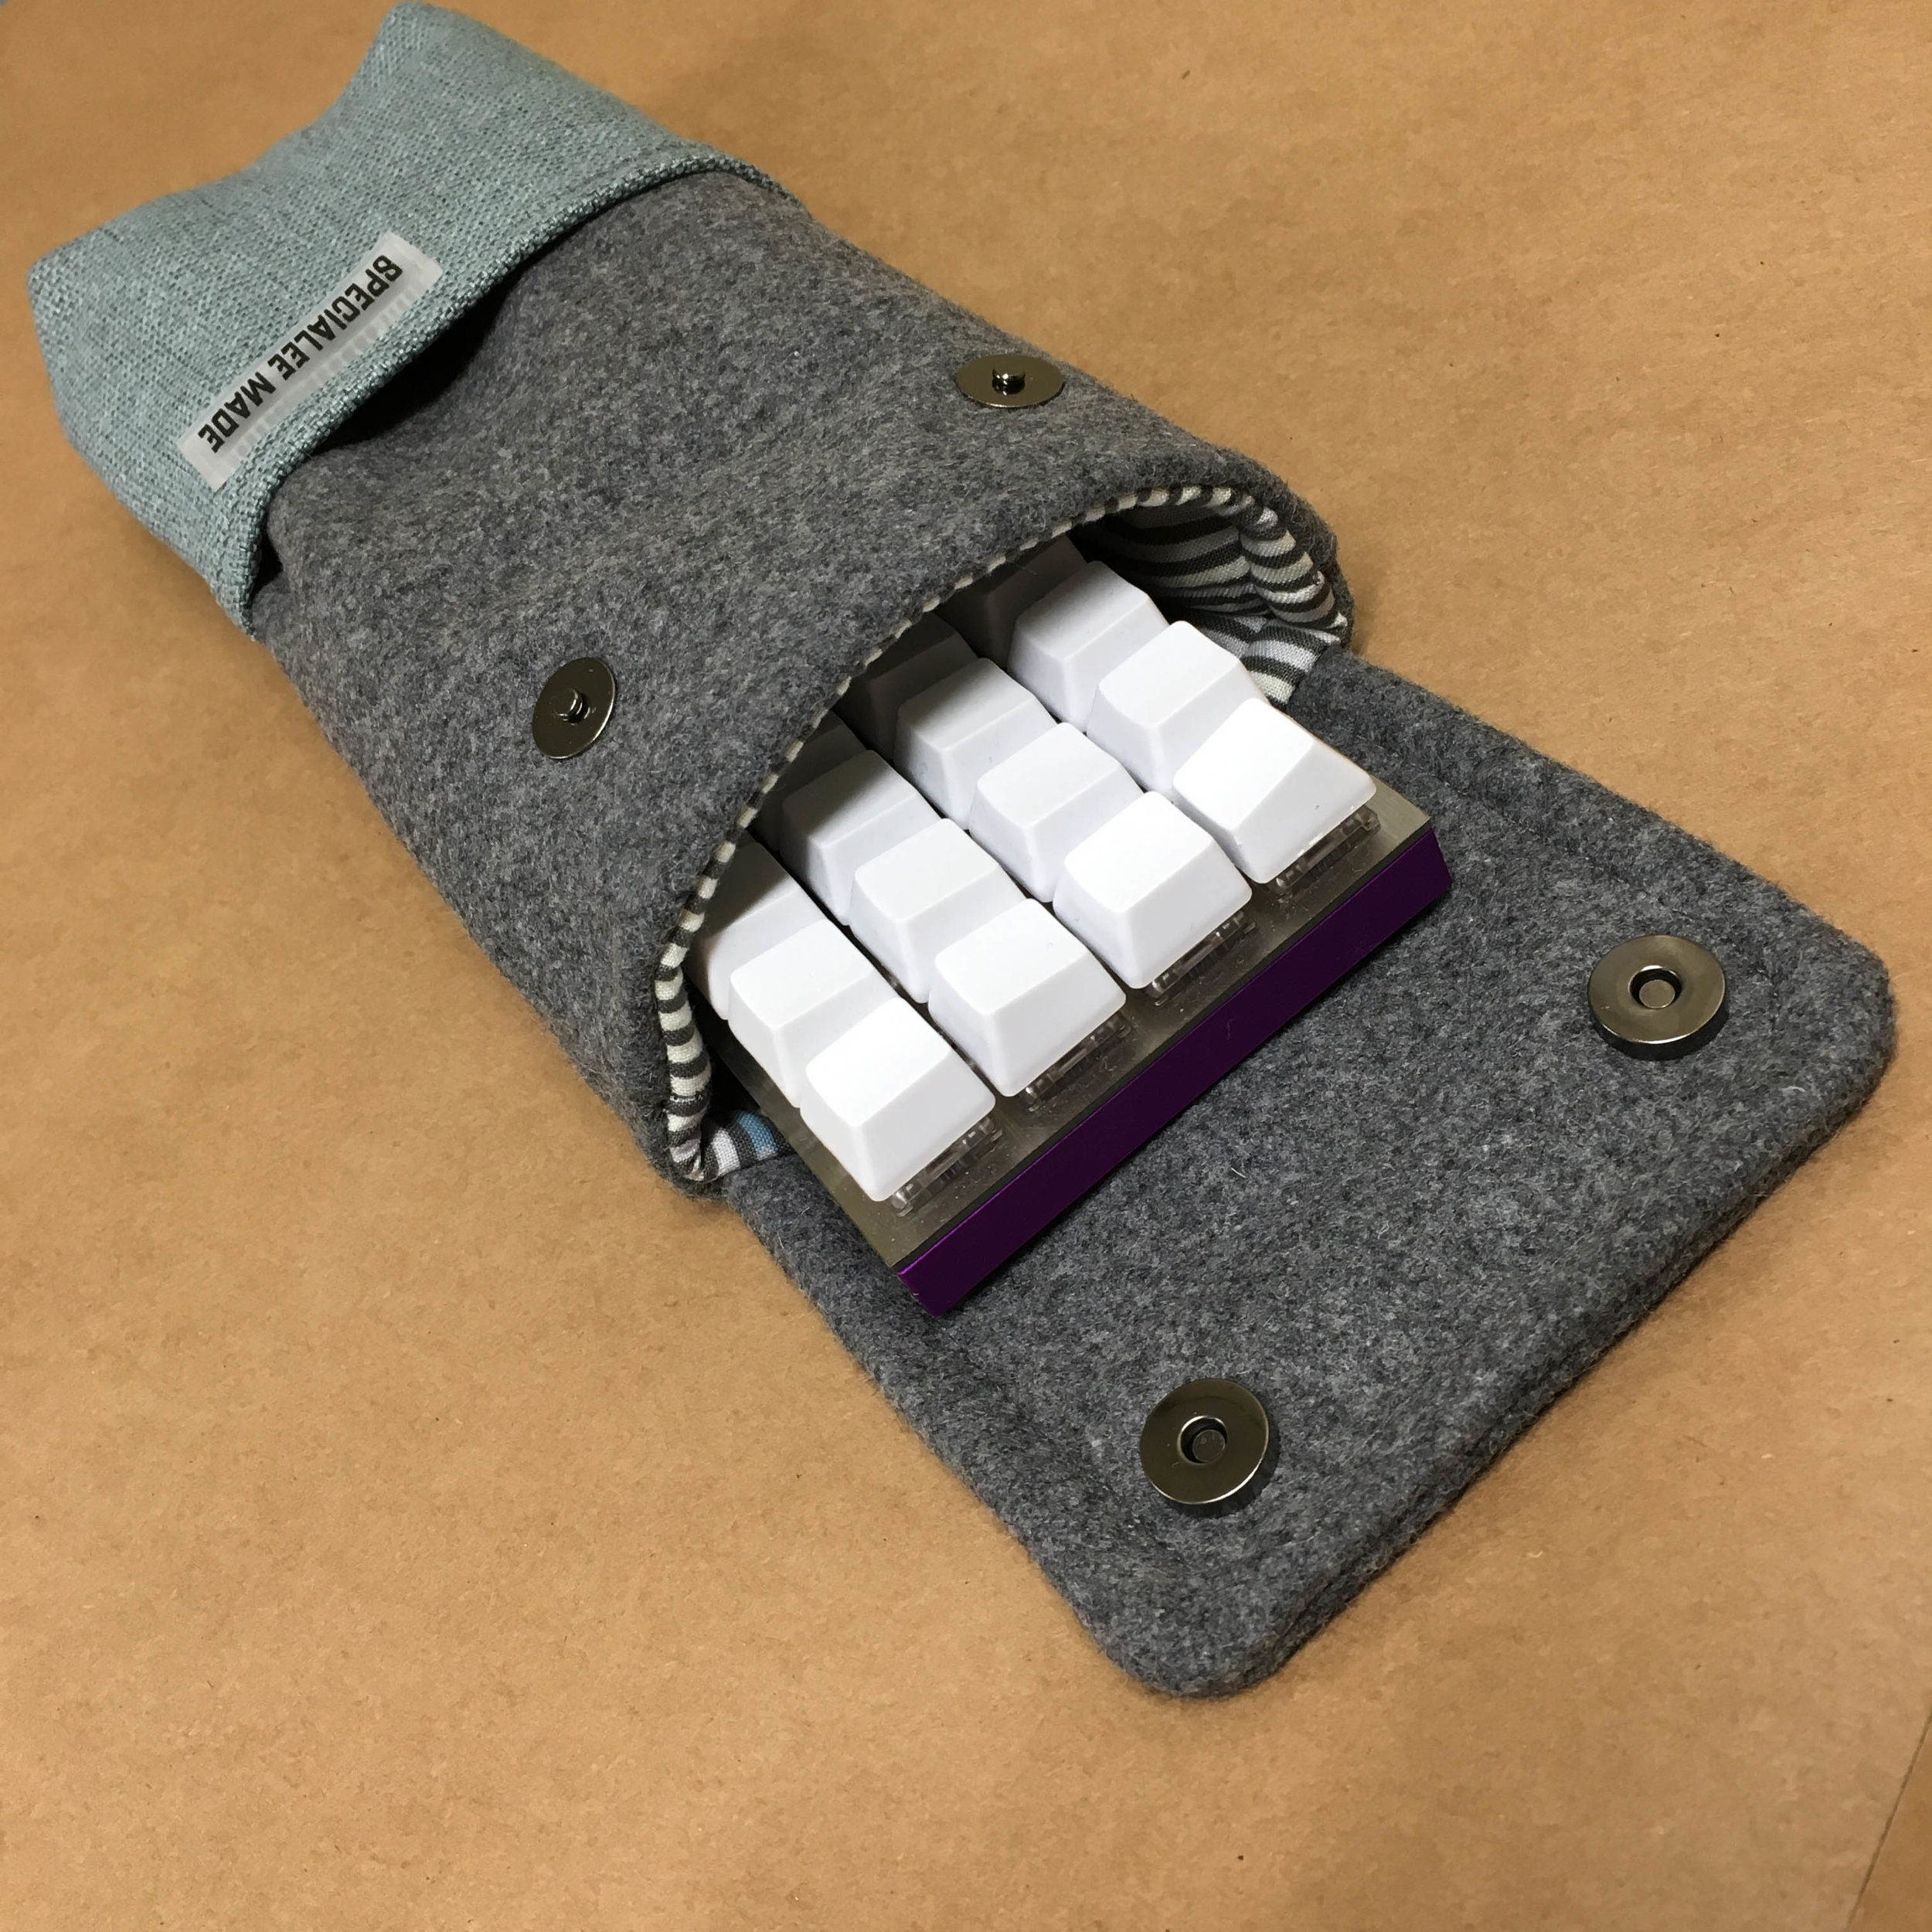 MAGNETIC FLAP STYLE: SQUARE - The flap will have a more square-ish shape with two magnetic buttons (40% sleeves may only have 1 button).